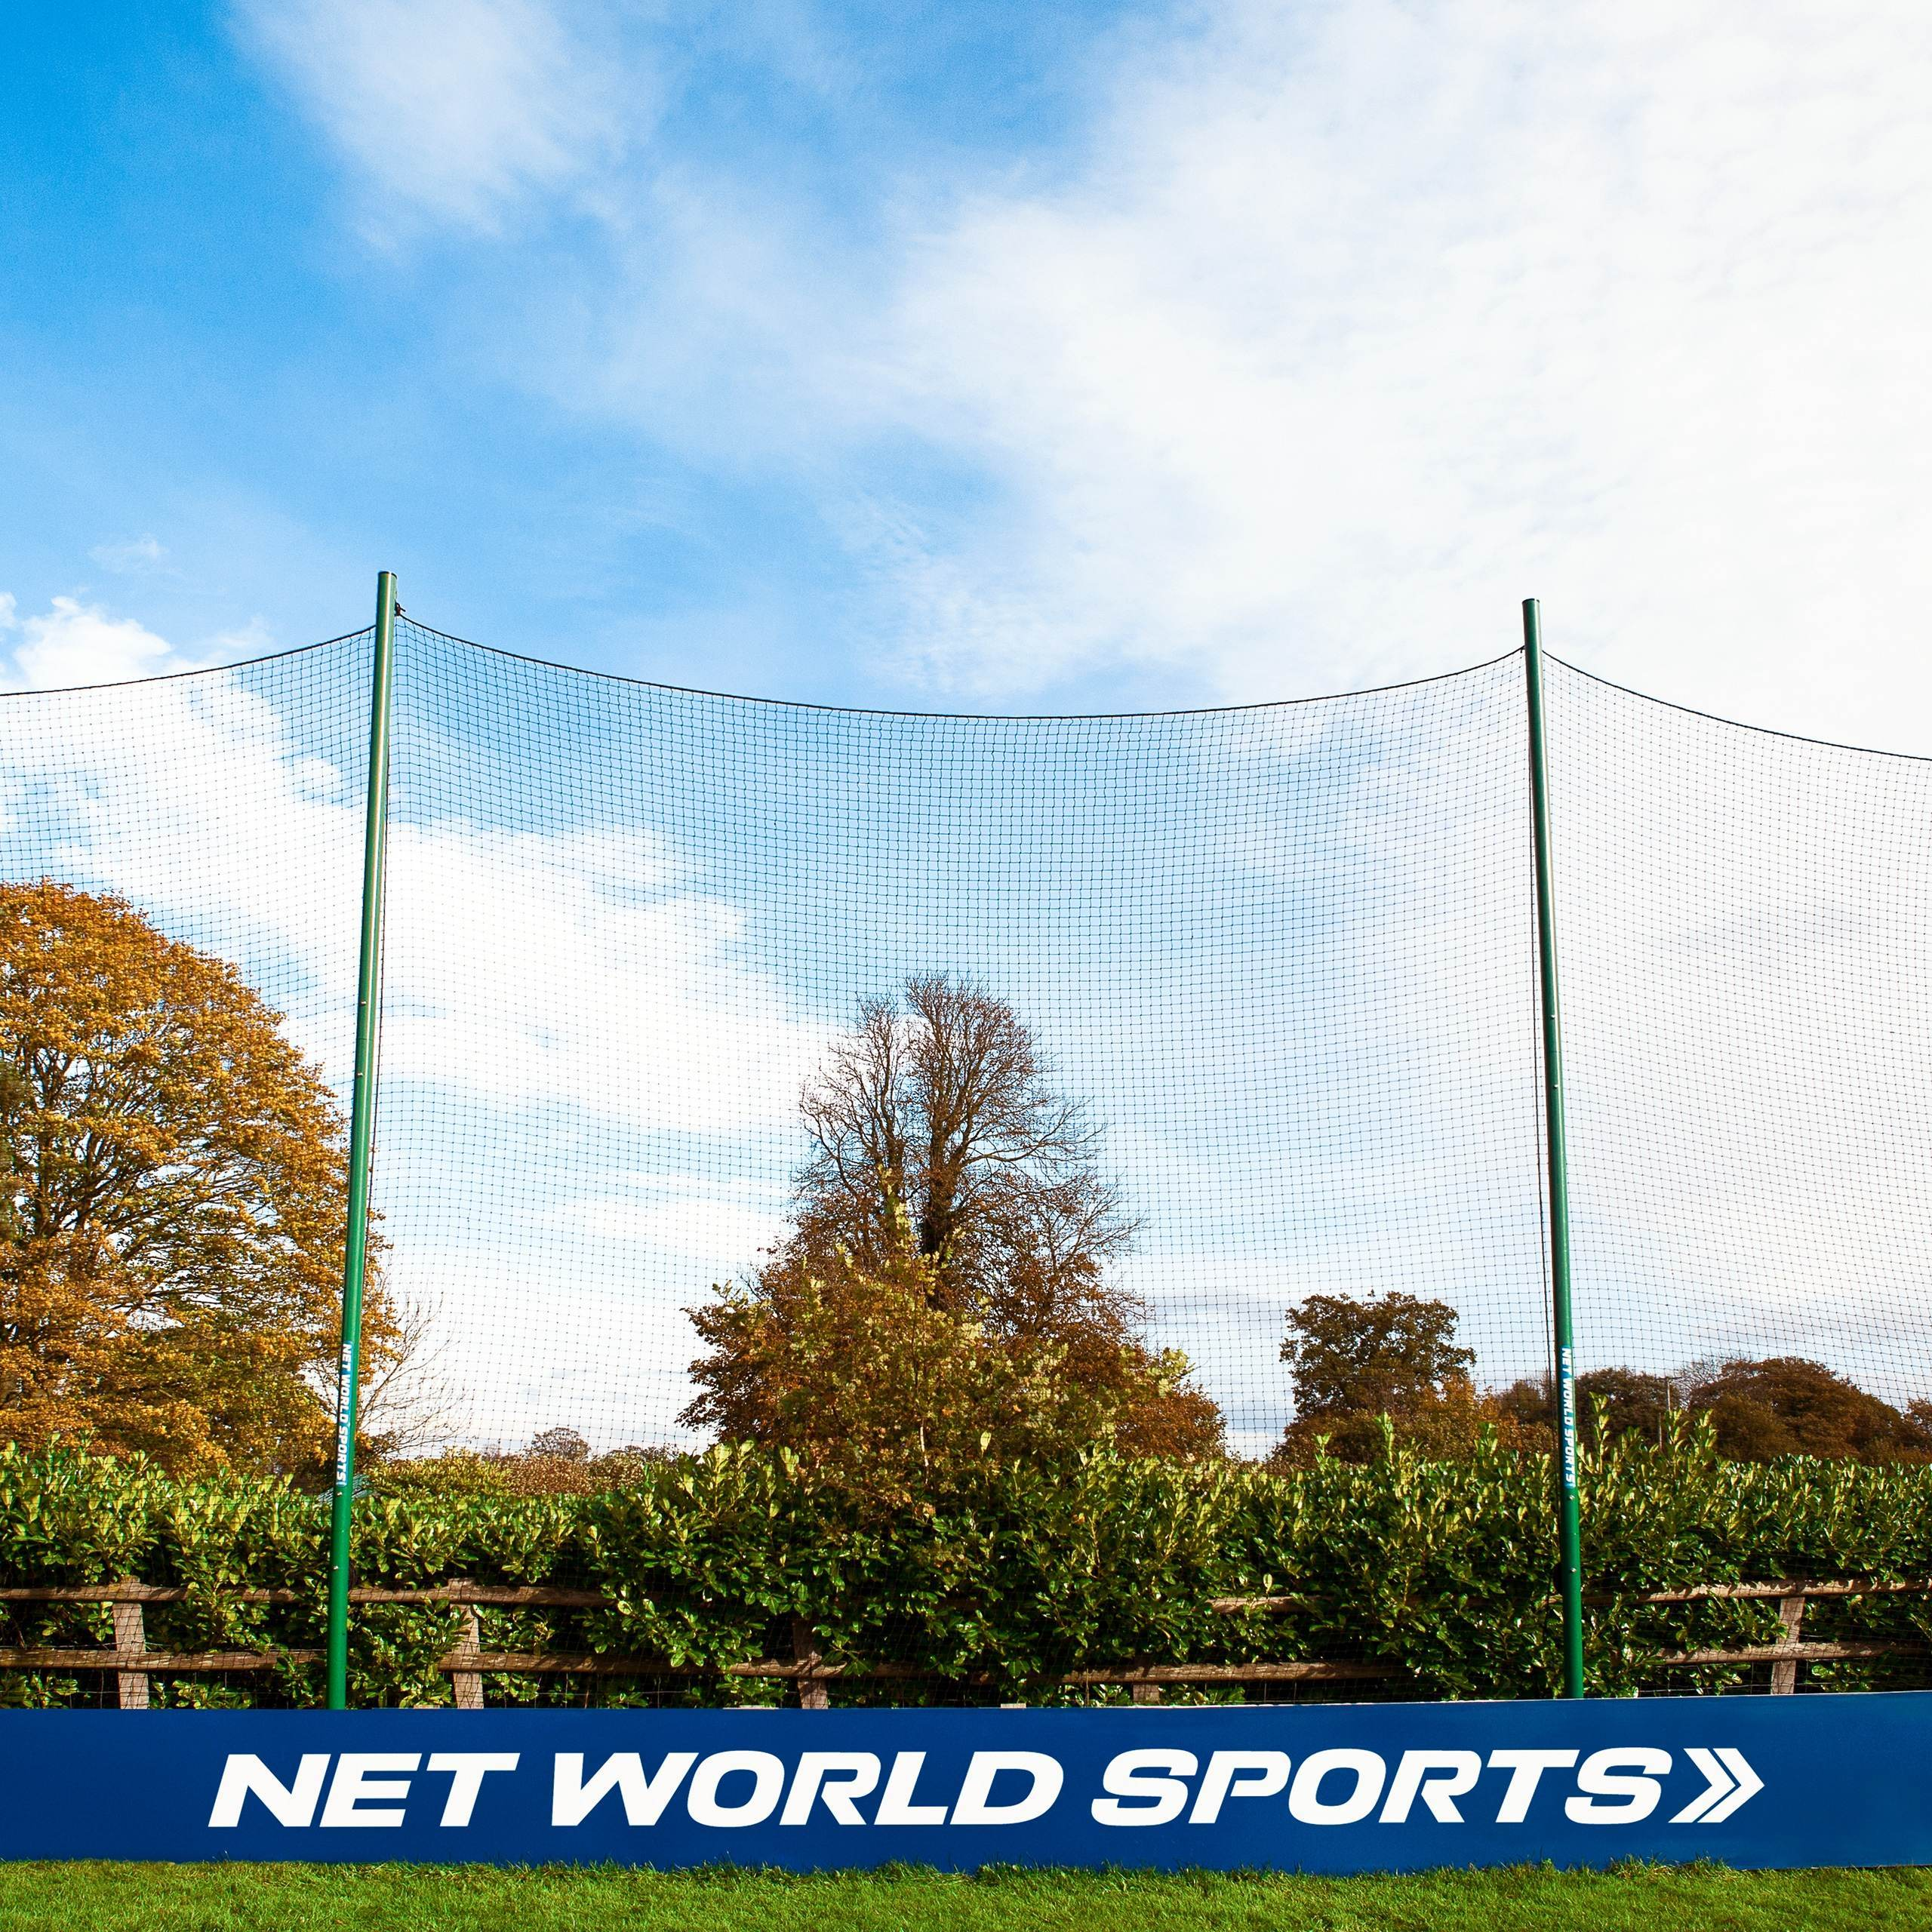 Backstop netting for cricket practice